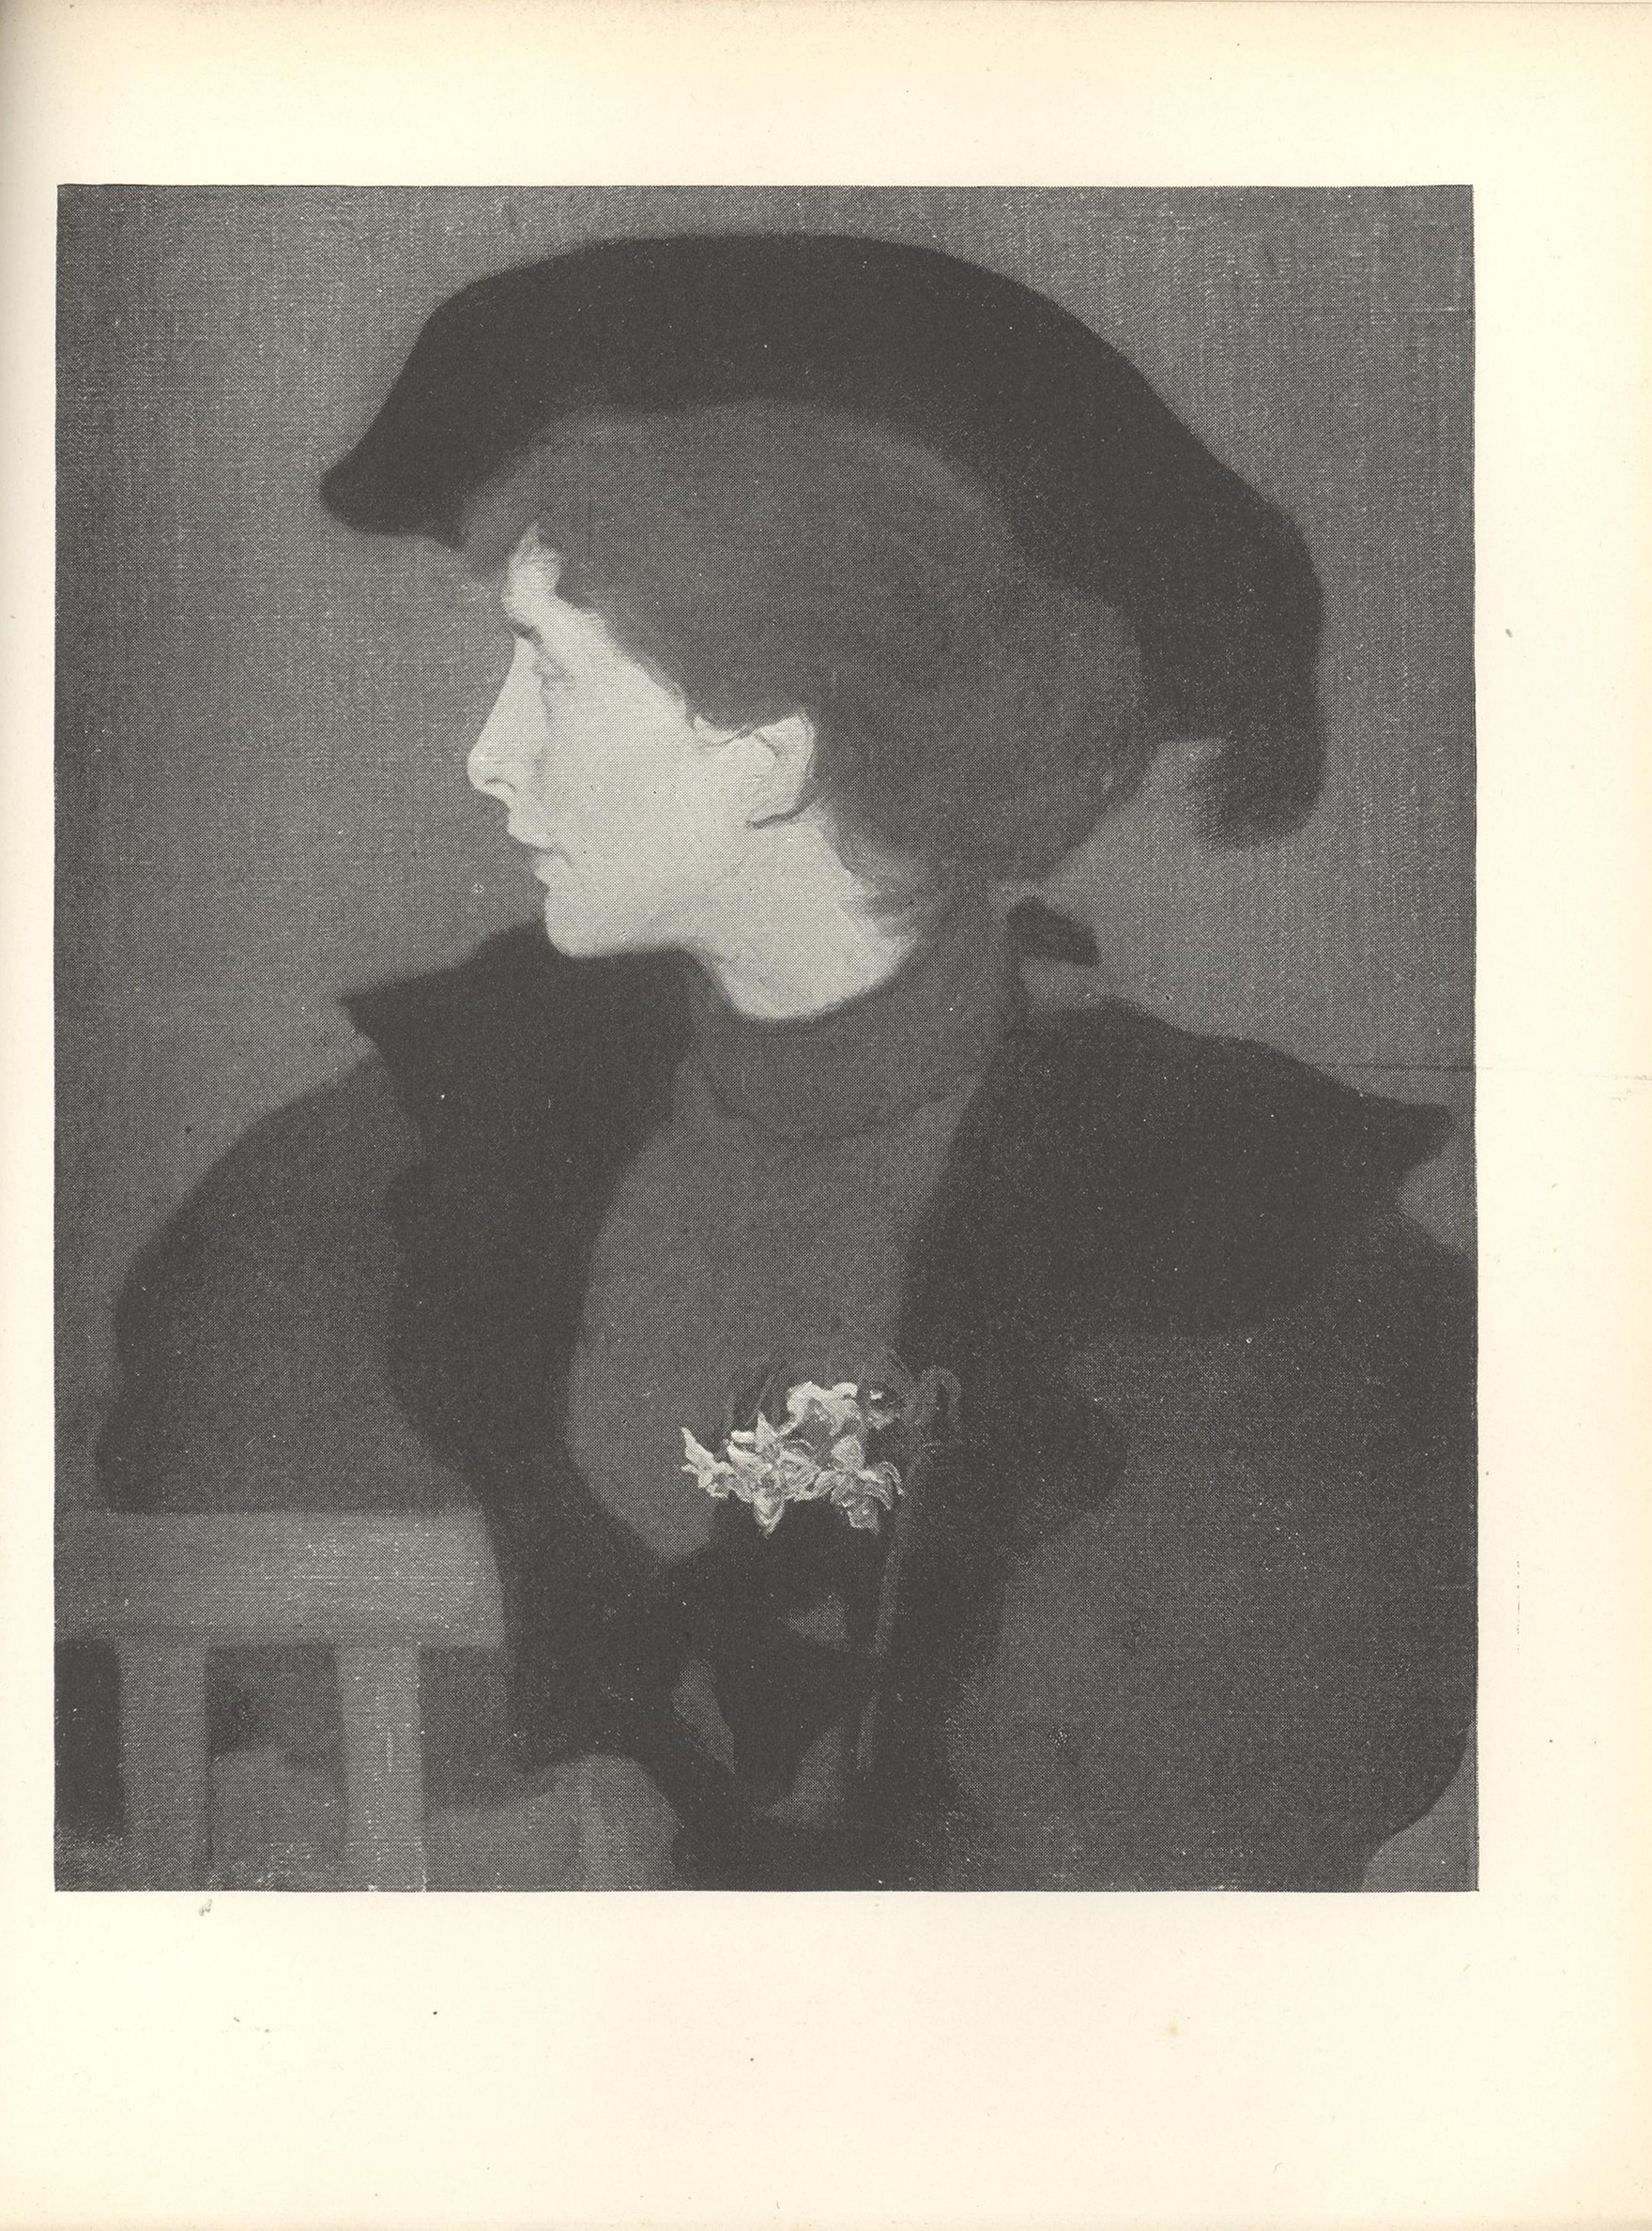 Image is the torso of a seated woman wearing a black hat with feather She is dressed in outside clothes with a white corsage in the lapel of her cloak She is sitting on a chair that s facing frontward with her head turned in profile to the left Her shoulders divide the pictorial space in half horizontally The chair is in the bottom left hand corner of the frame The background is open and dark coloured The image is vertically displayed.